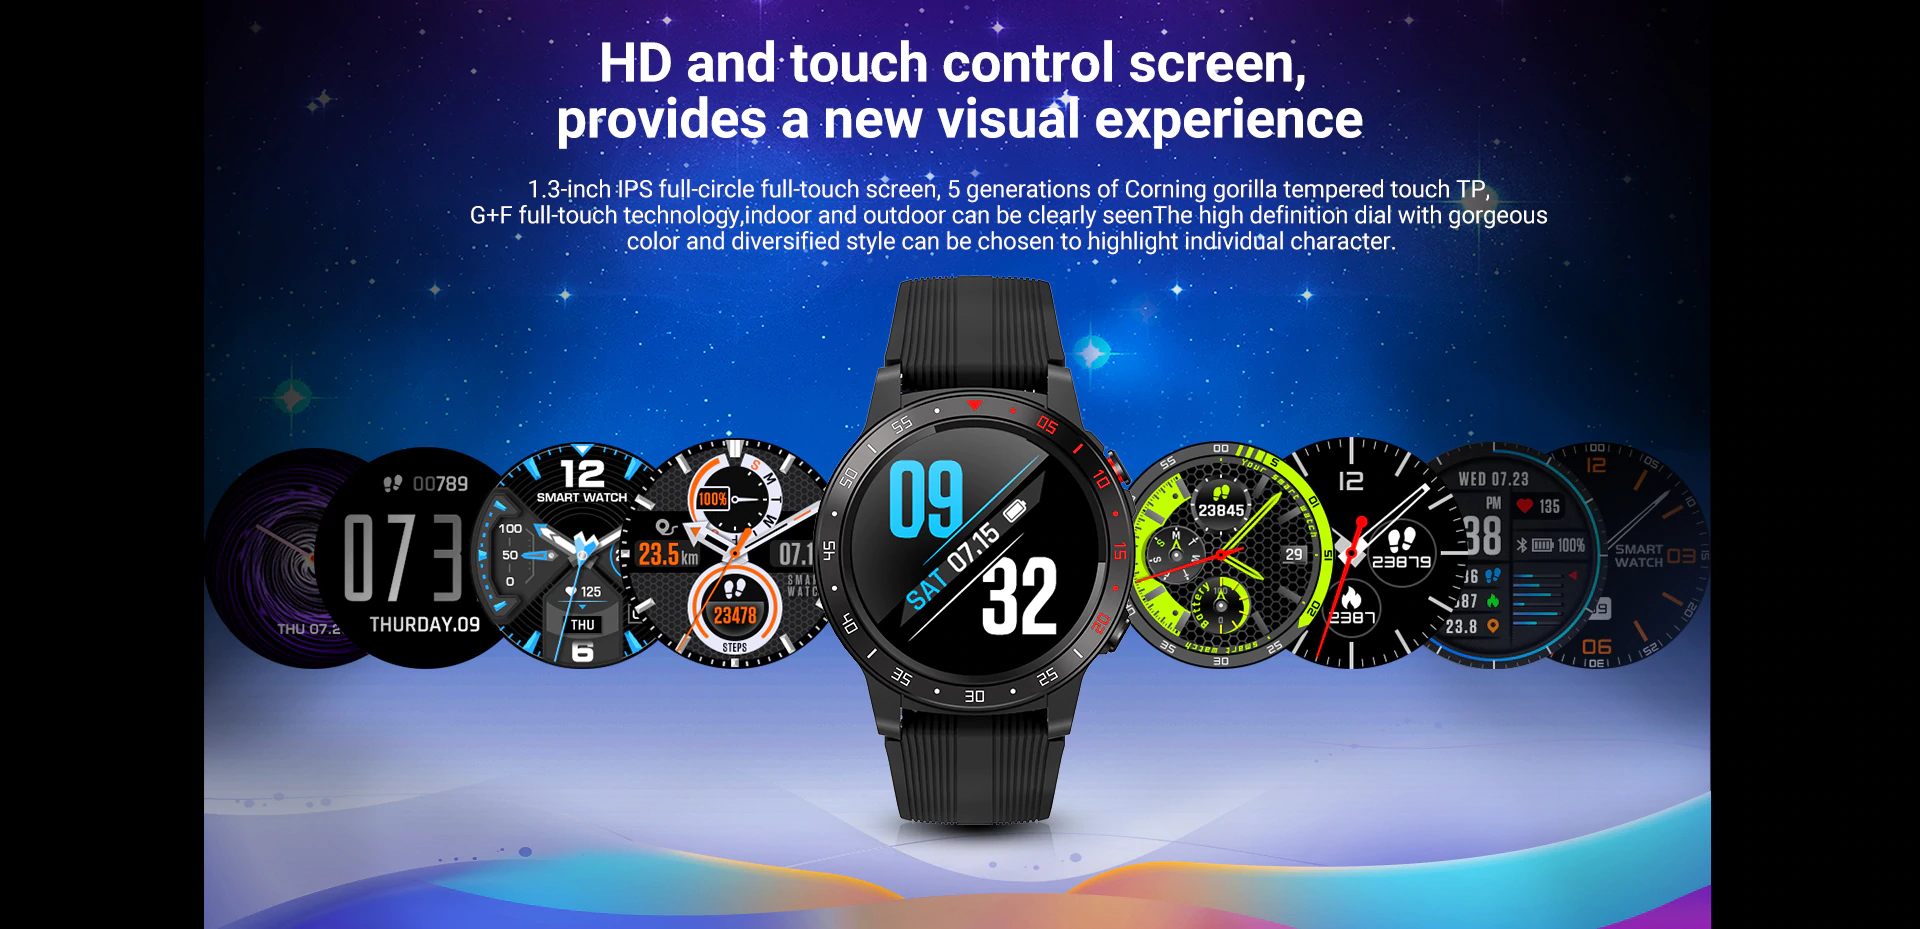 HD & Touch Control Screen Of watch